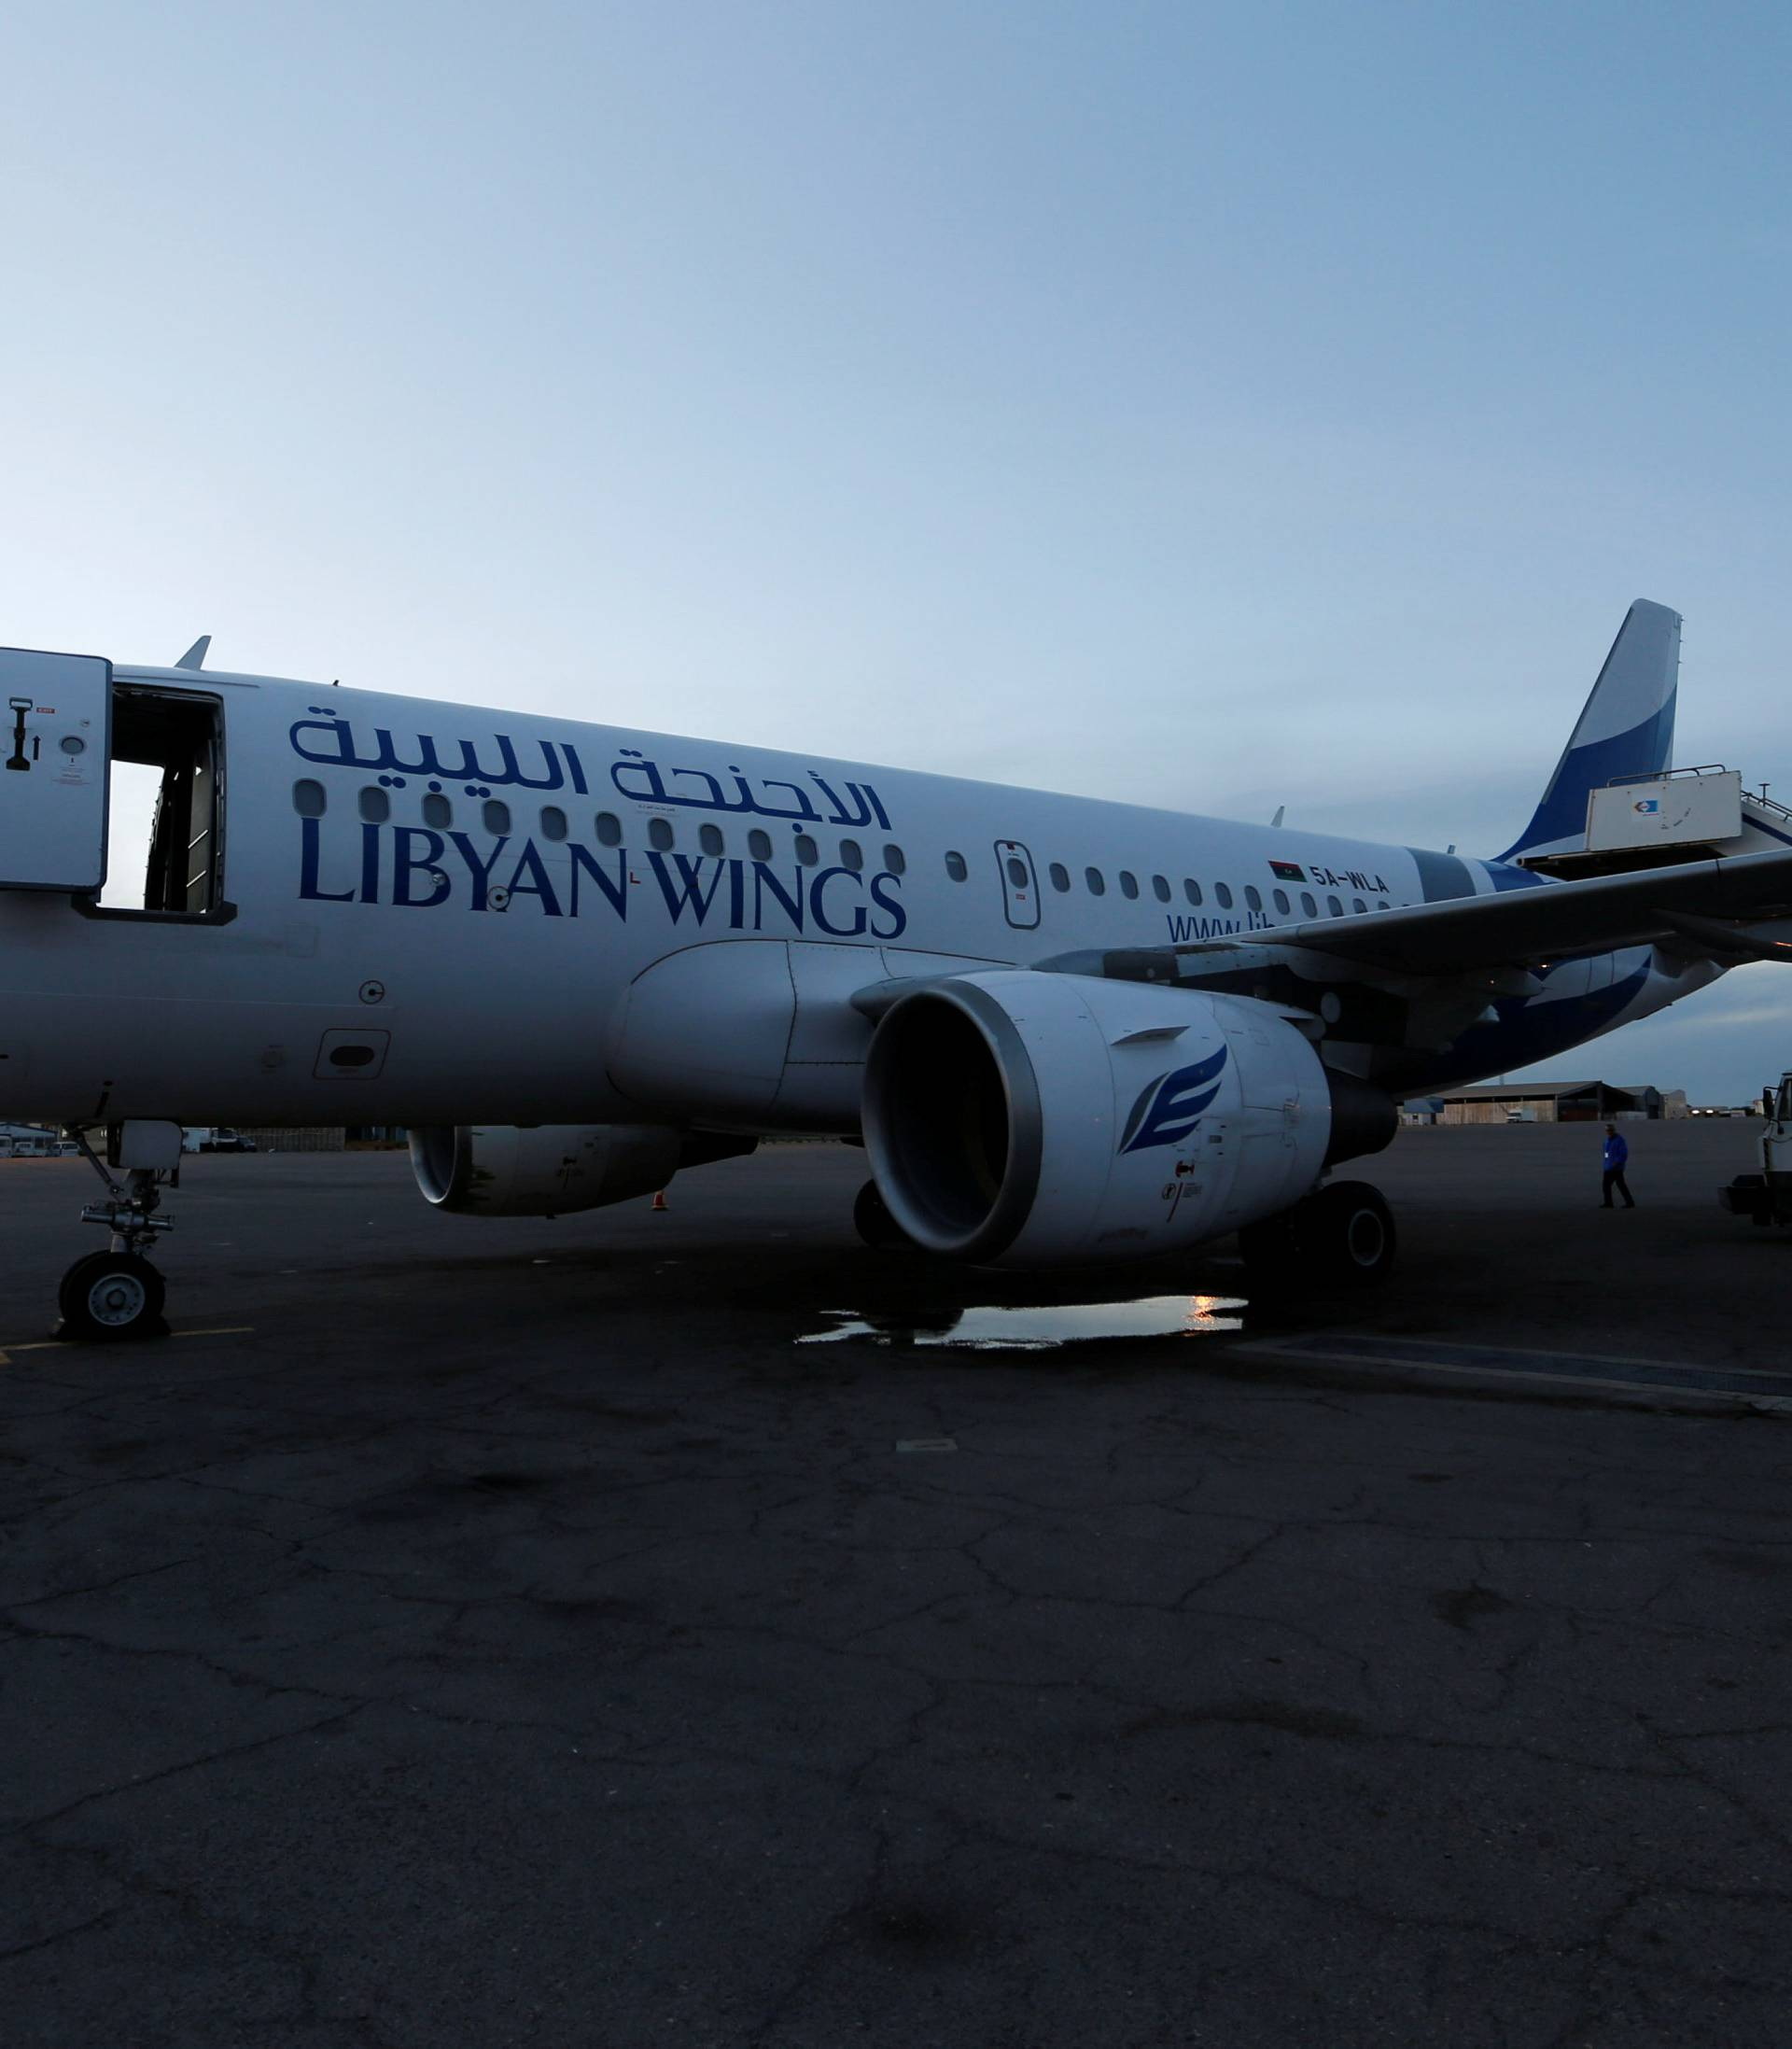 Plane, that was damaged during clashes, is seen at Mitiga airport in Tripoli